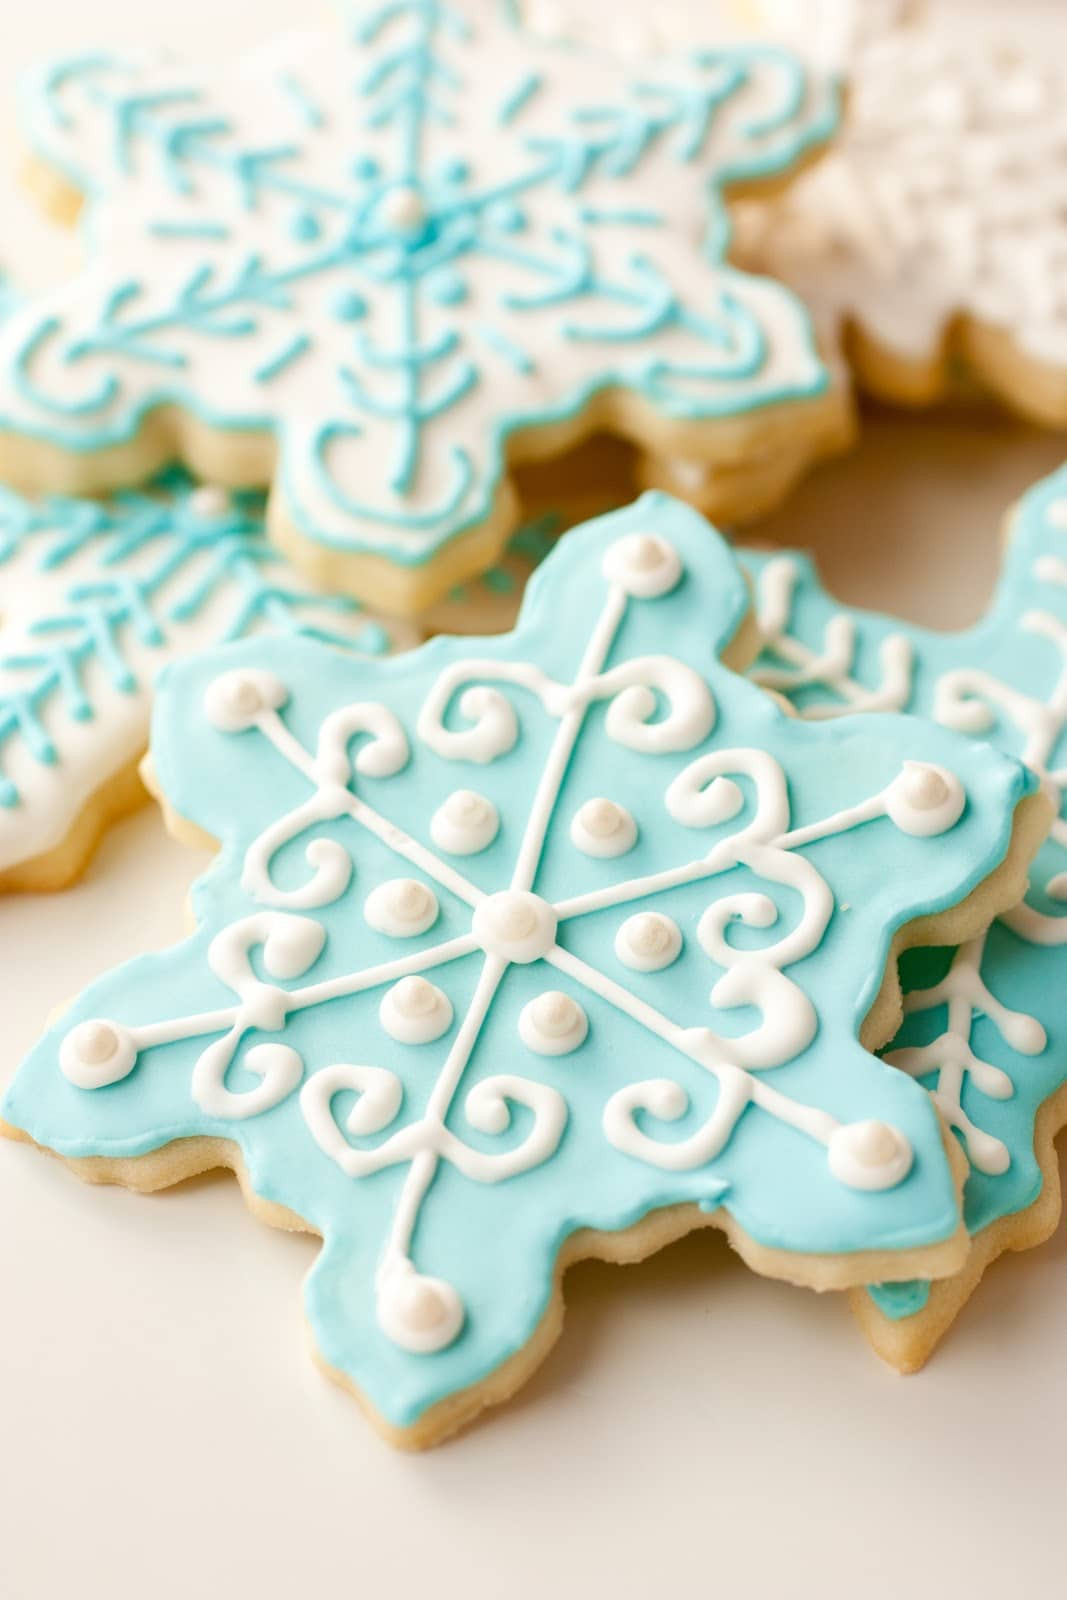 Iced Christmas Cookies  Iced Sugar Cookies Cooking Classy